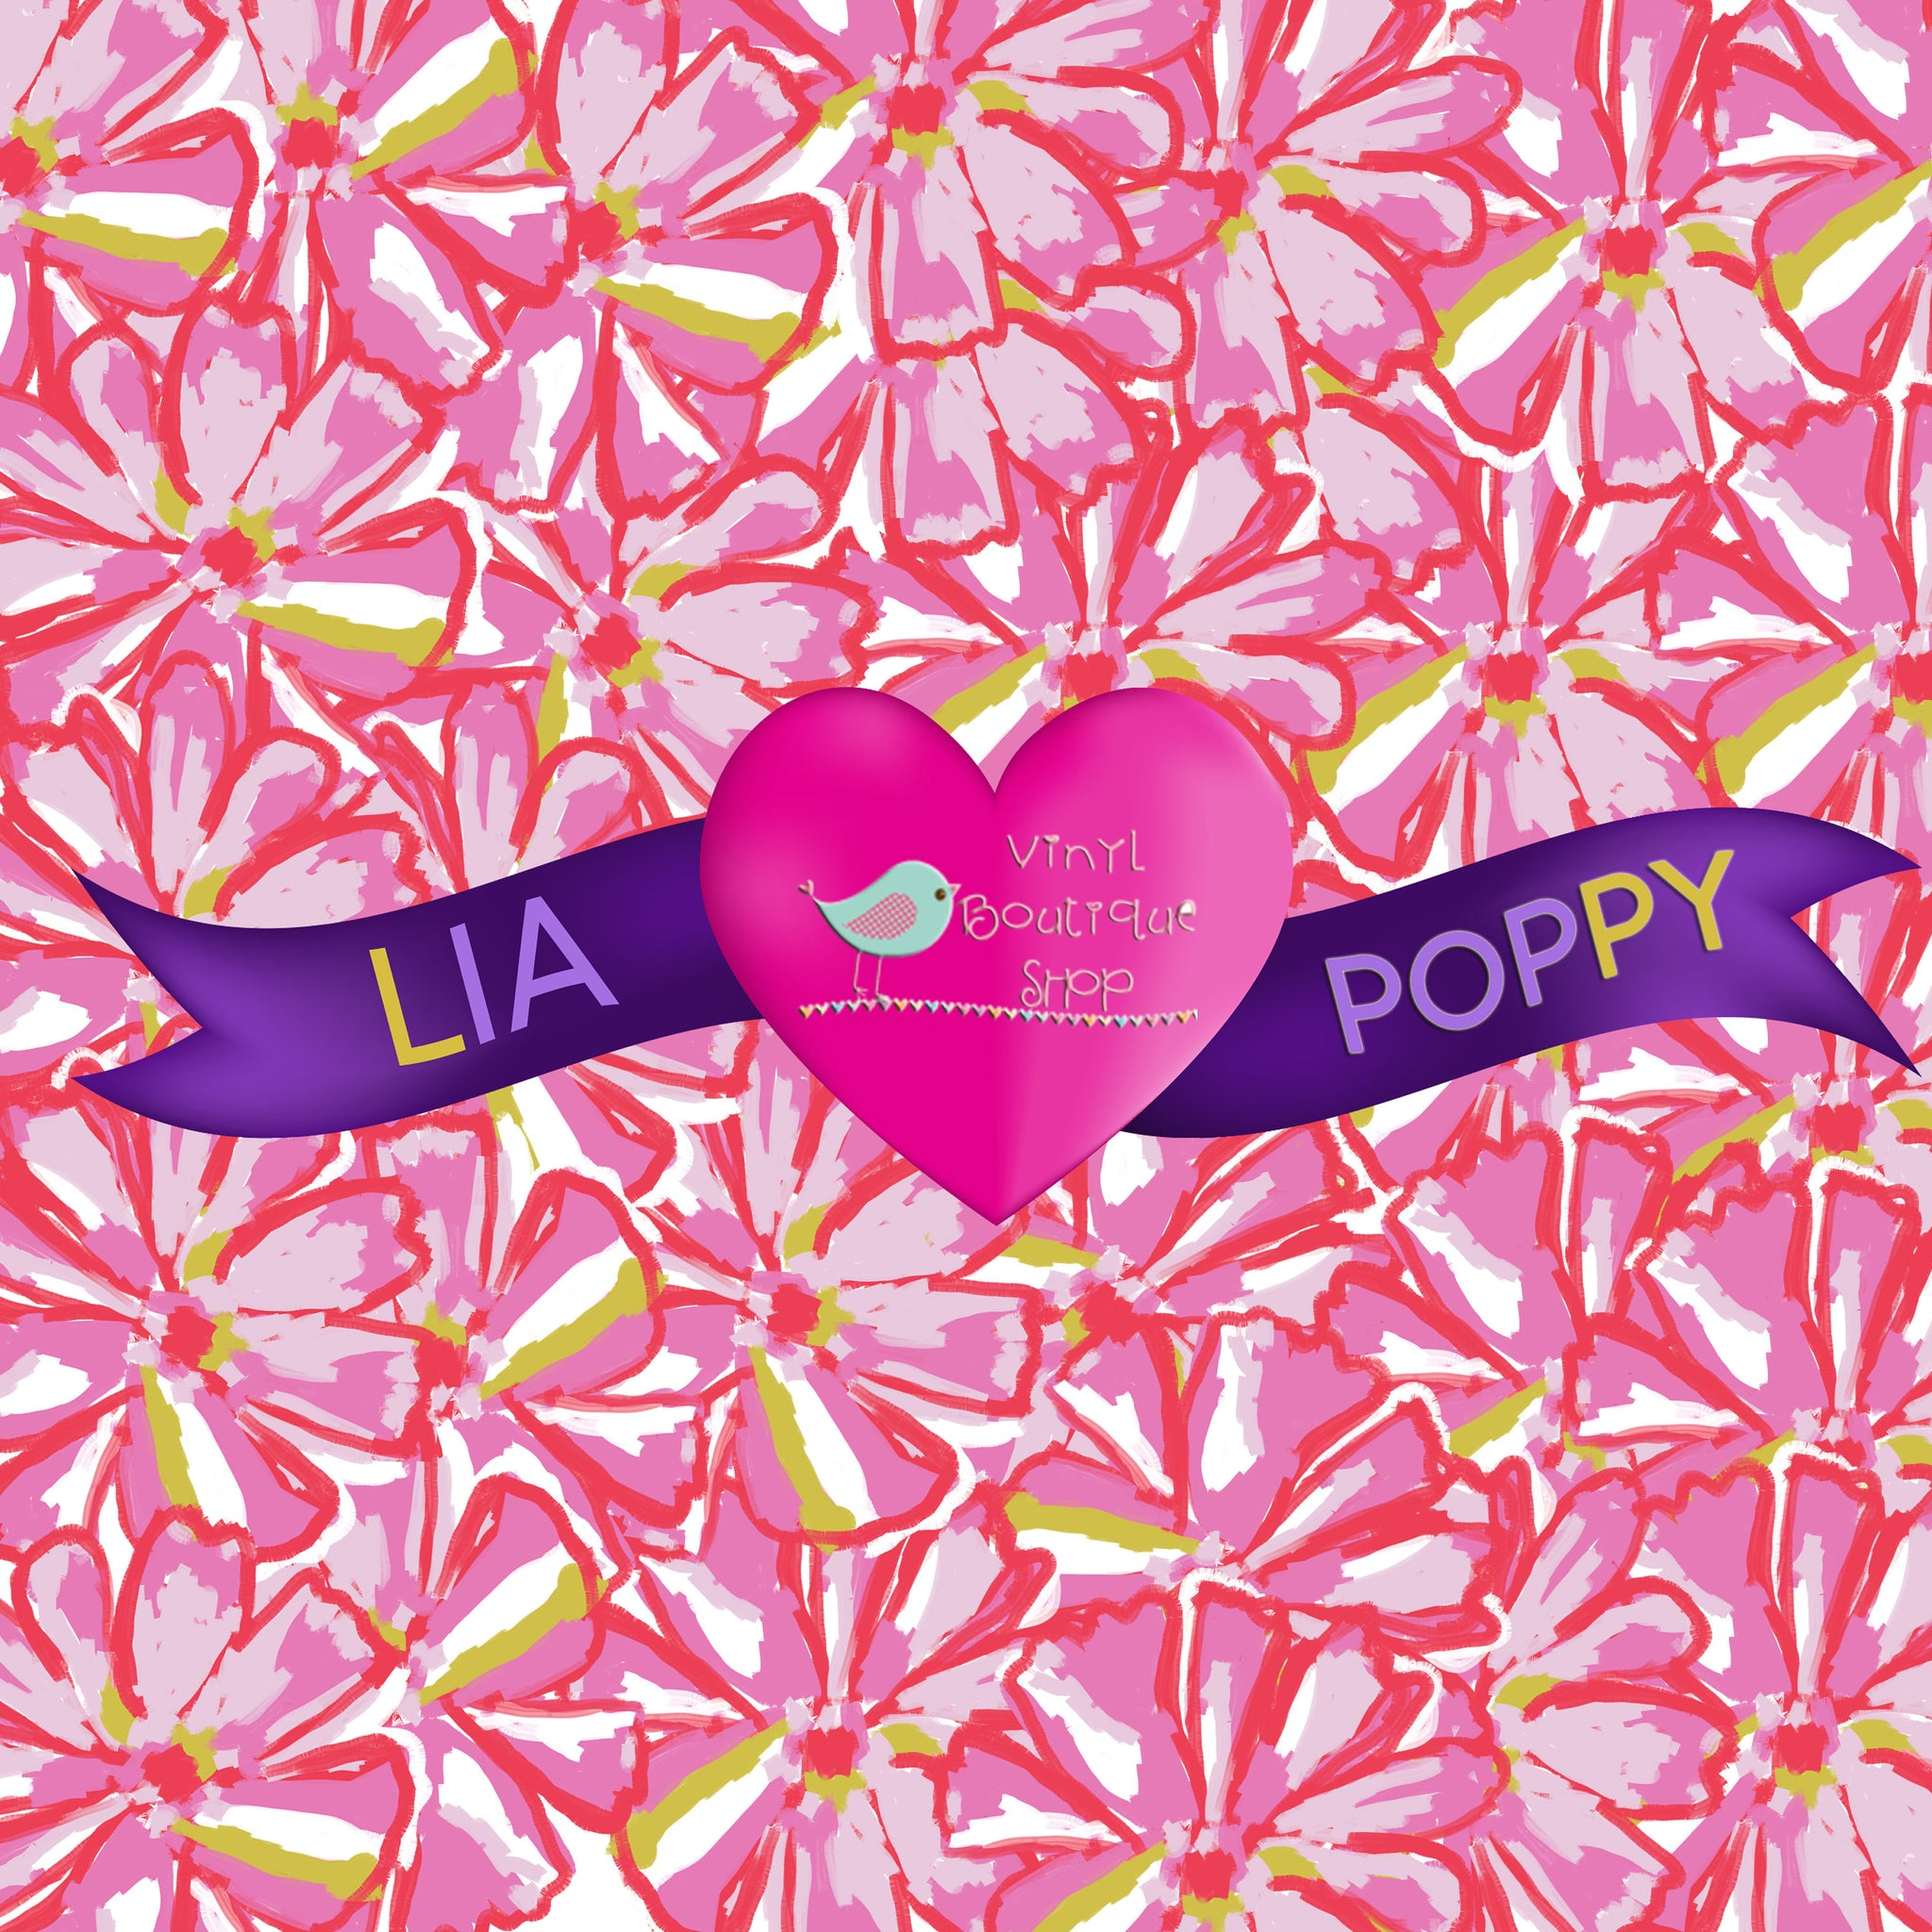 Pink Flower Lia Poppy Vinyl Sheet Sheet LPY-7 - Vinyl Boutique Shop